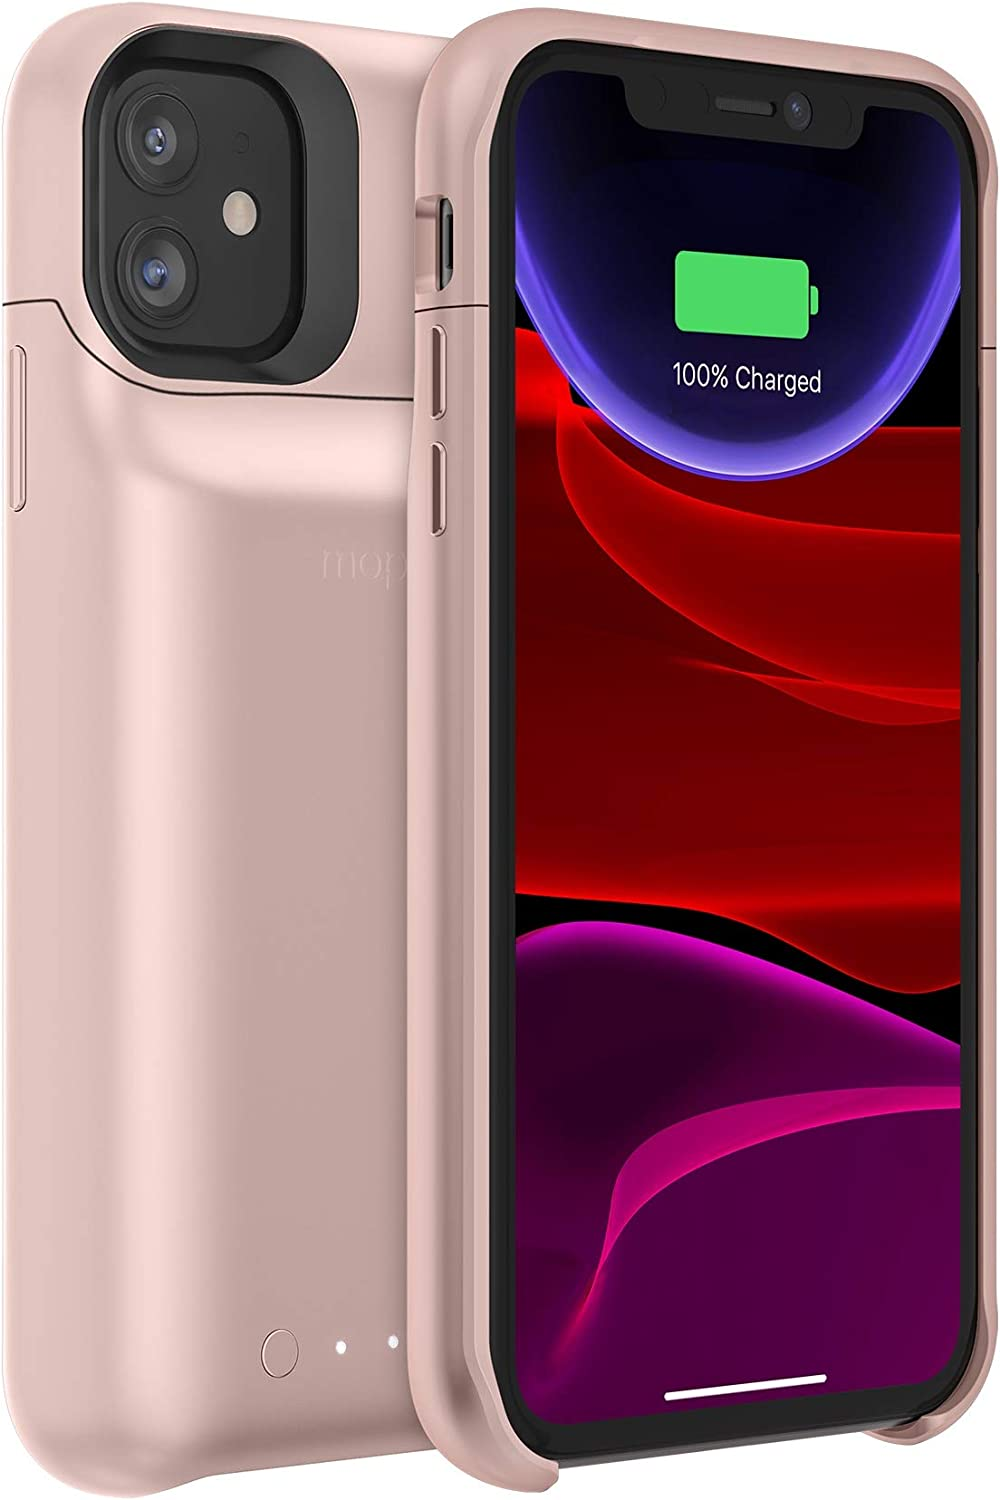 mophie 401004518 Juice Pack Access - Ultra-Slim Wireless Charging Battery Case - Made For Apple Iphone 11 - Blush Pink